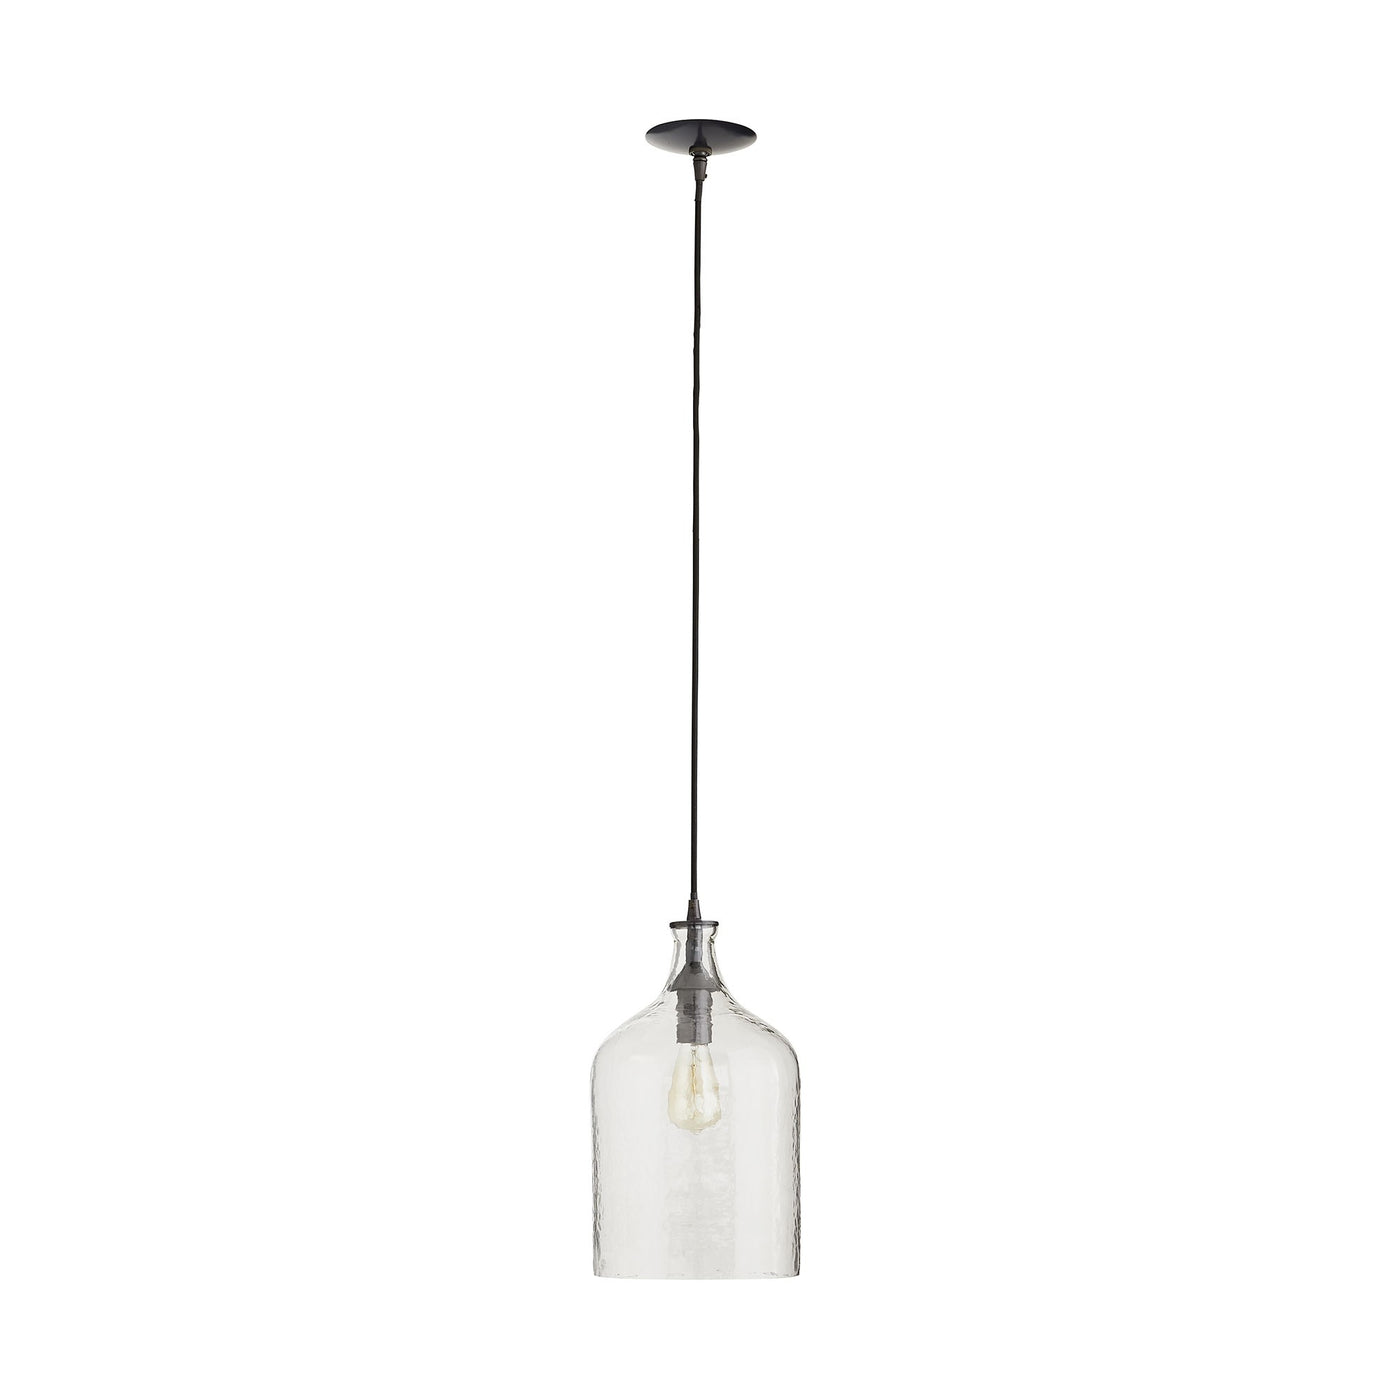 arteriors noreen pendant clear seedy glass full view